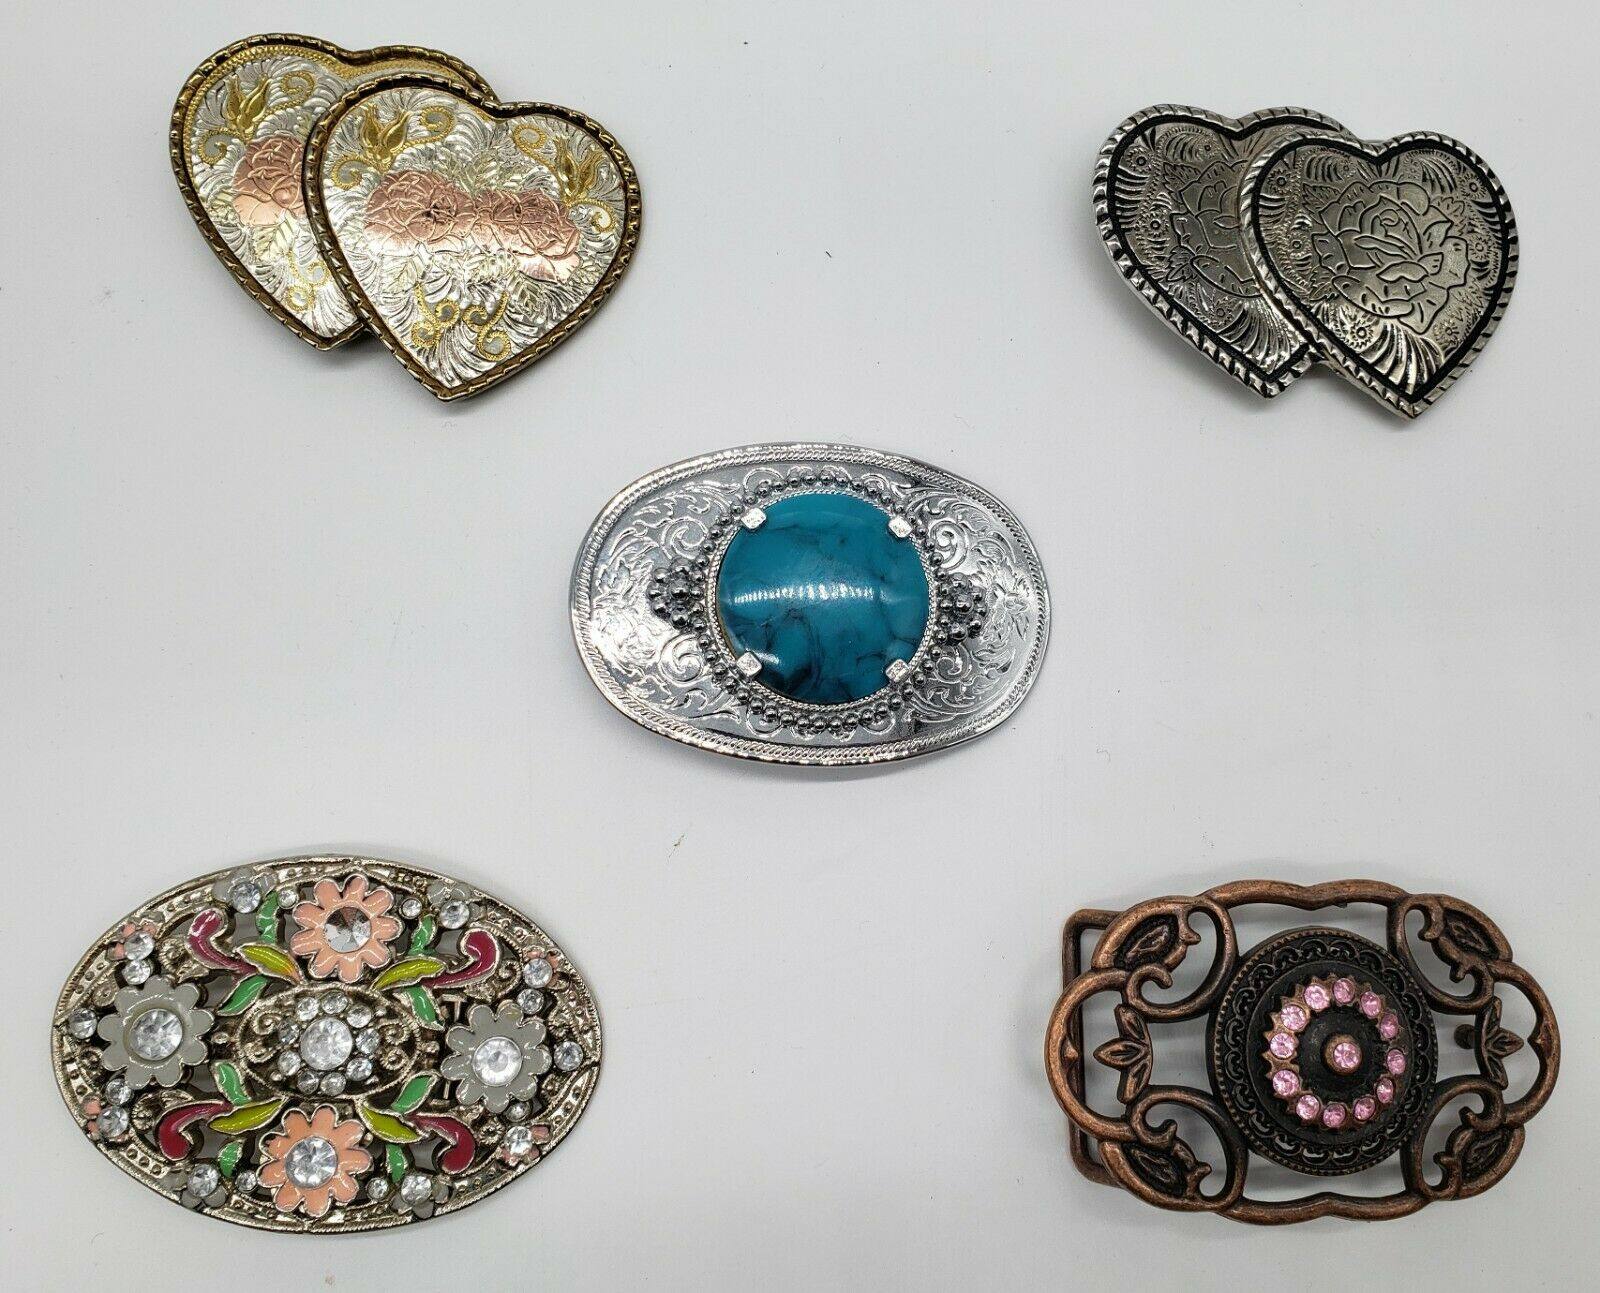 Five(5) Women's Vintage Belt Buckles Turquoise Flowers Hearts Two Made in USA